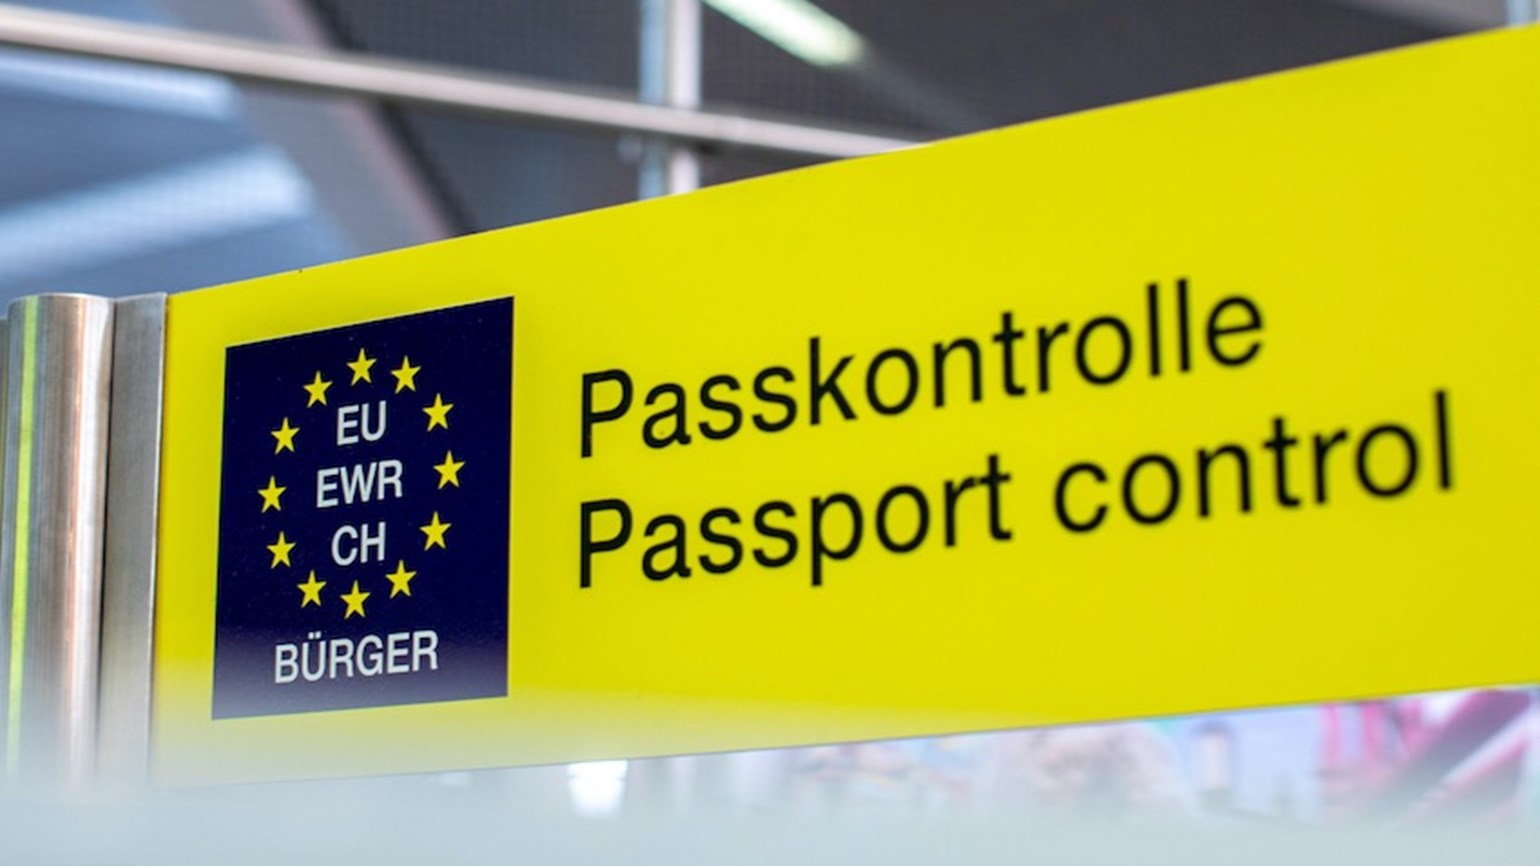 EU passport control